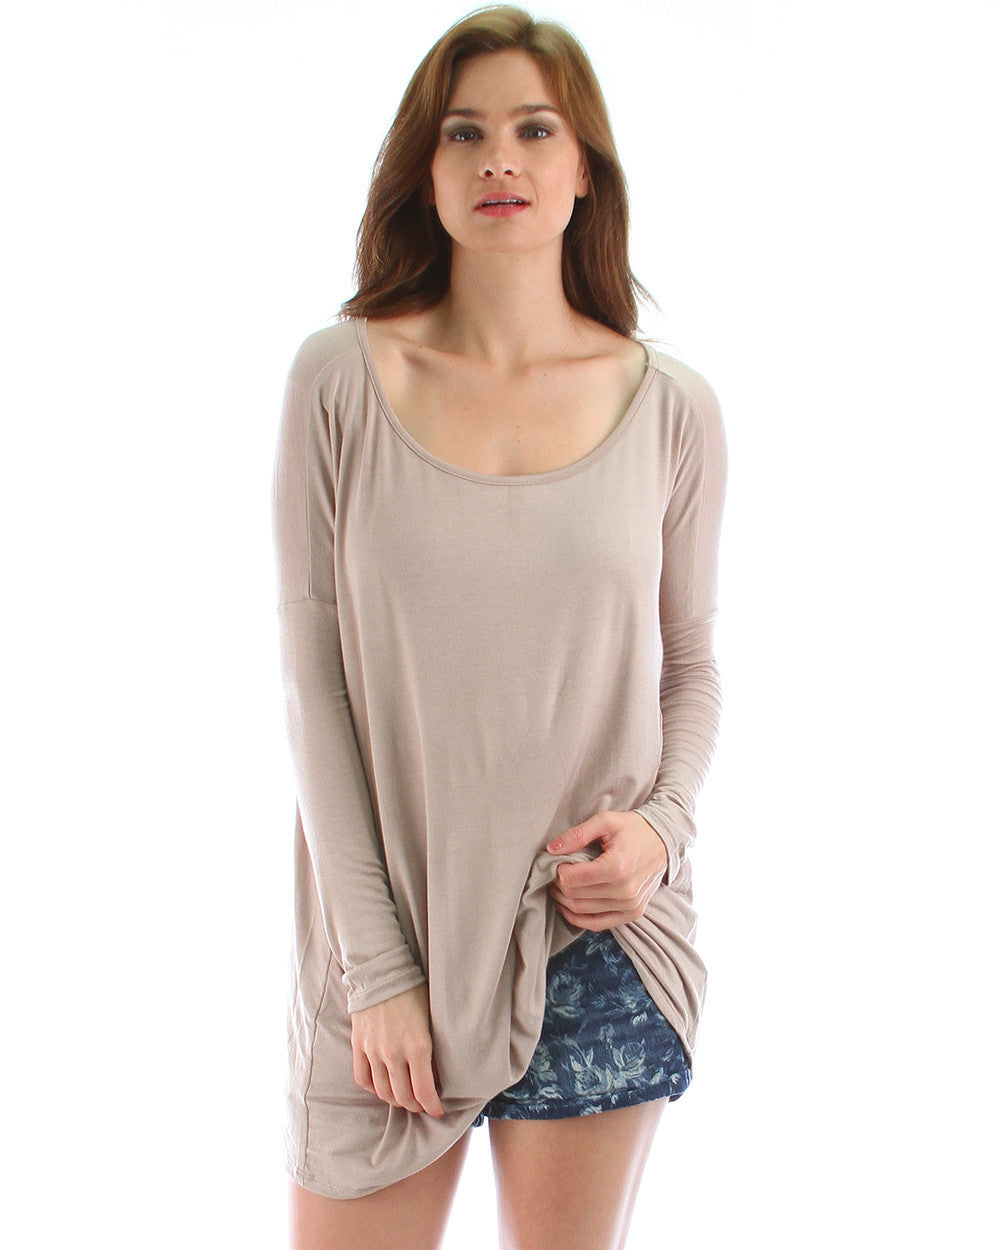 Over-Sized Long Sleeve Tunic Top In Mocha